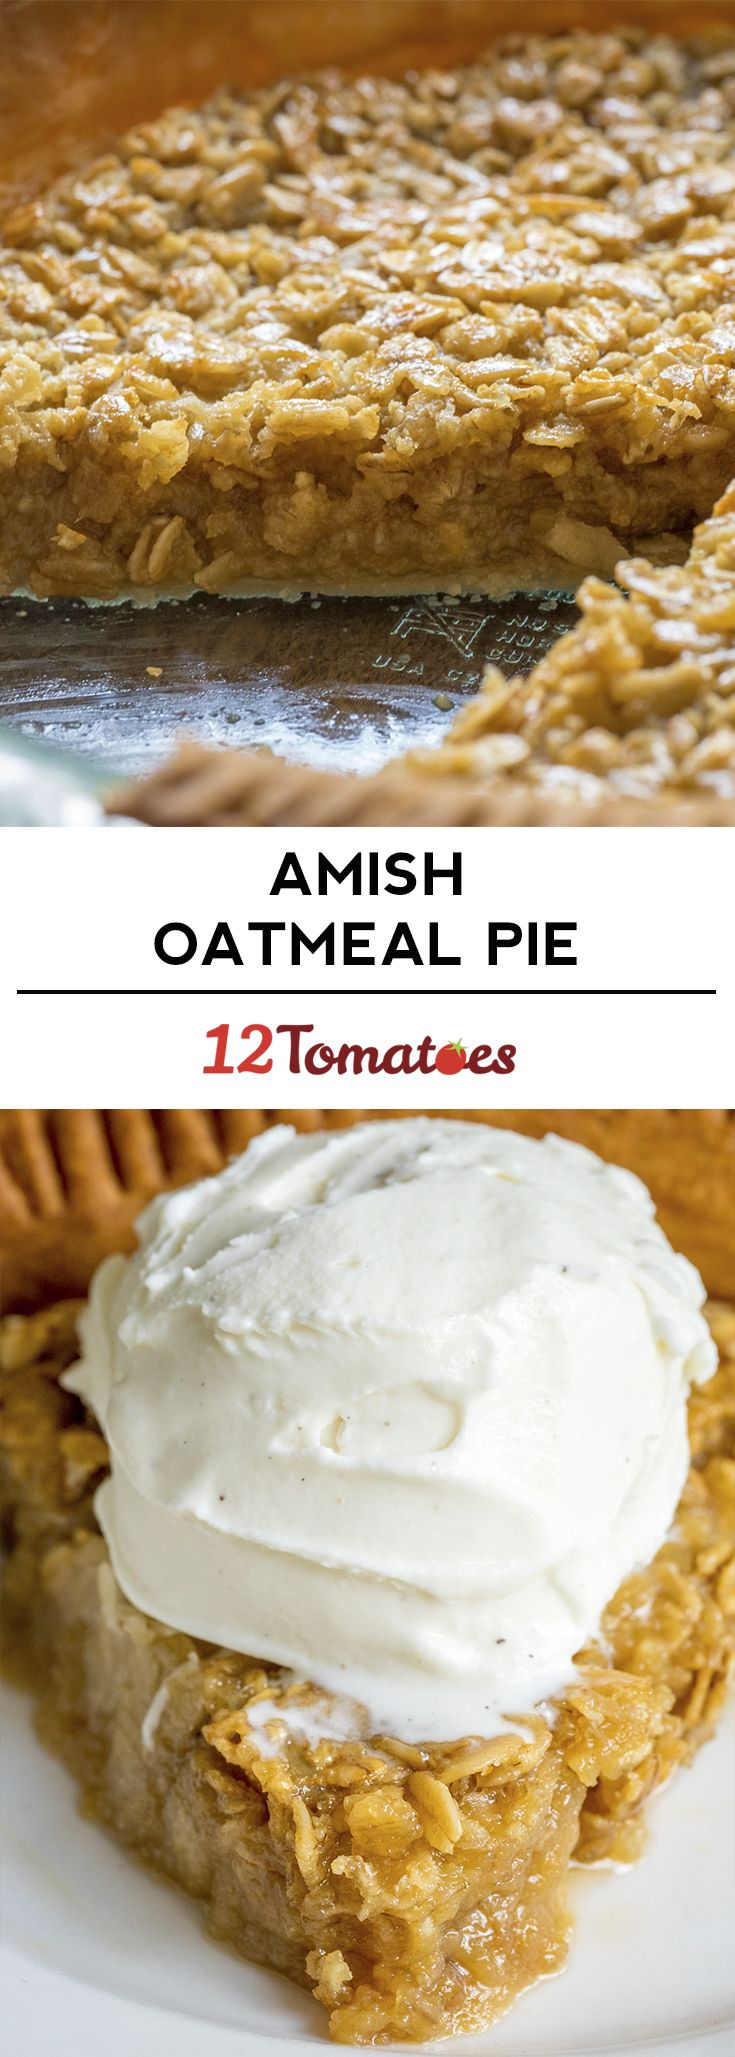 Amish Oatmeal Pie.